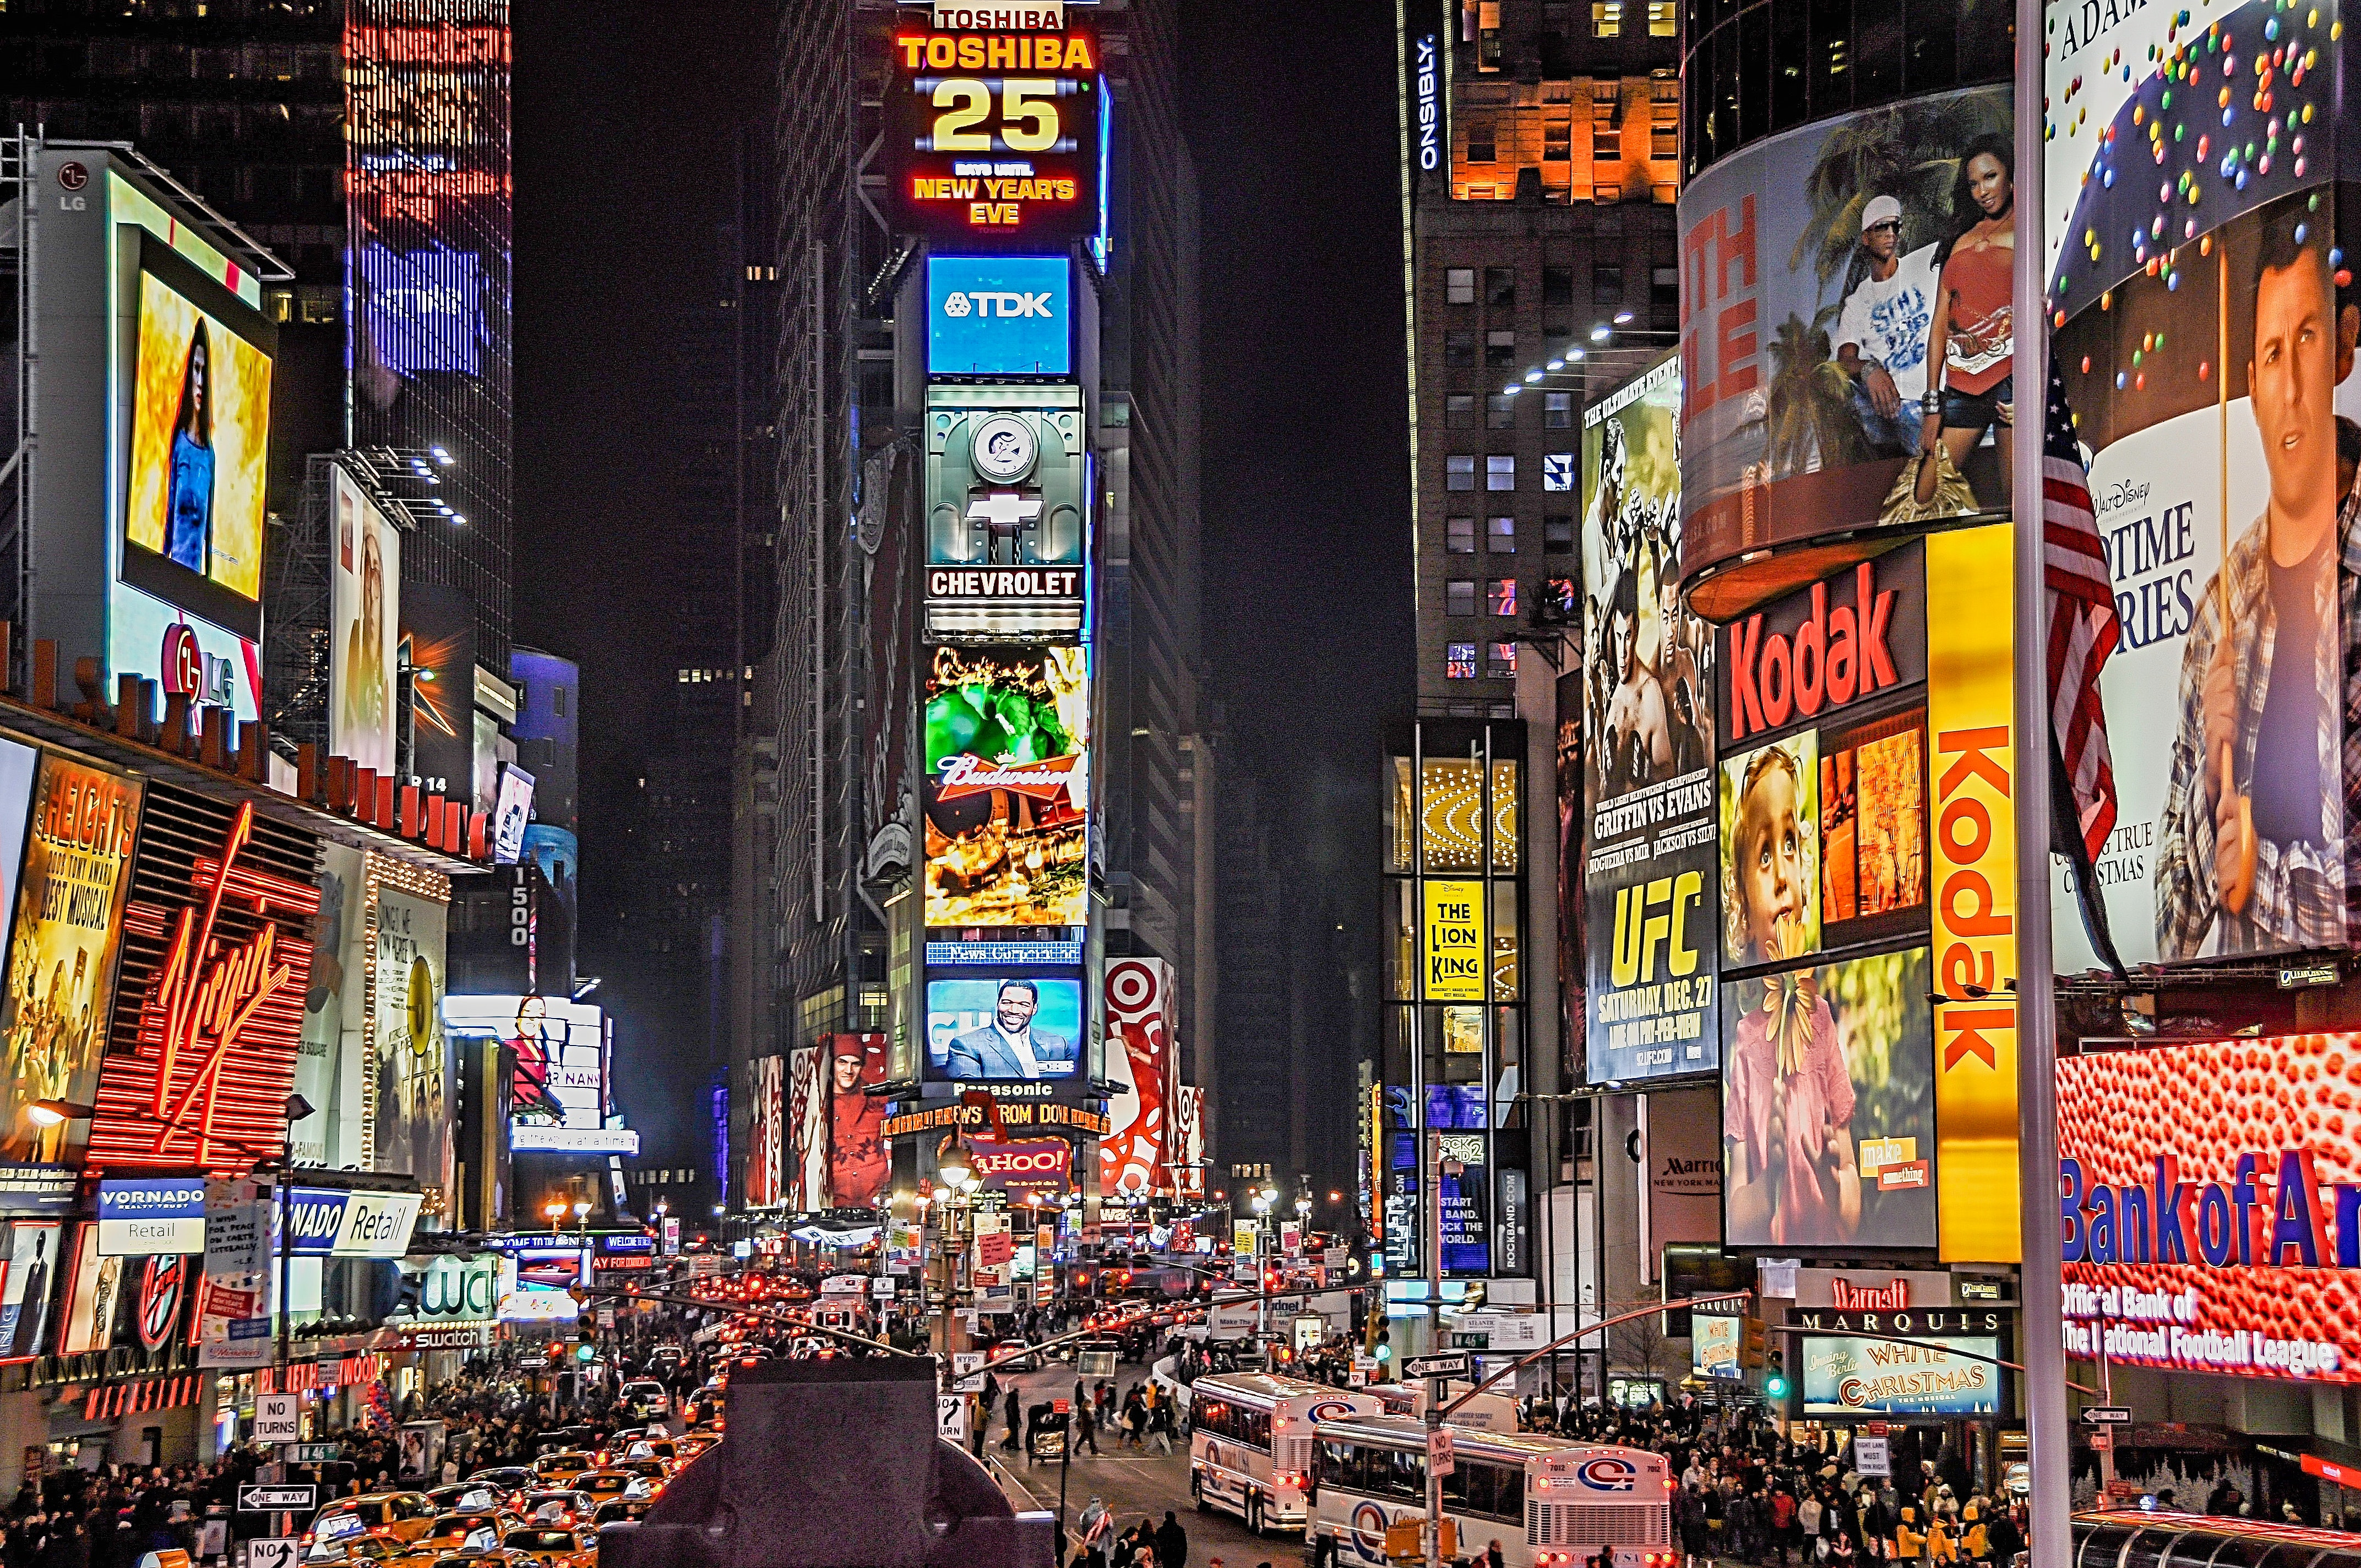 """Cluttered media environments like Times Square, shown here, help explain why the """"aha!"""" moment is a common goal for creatives."""